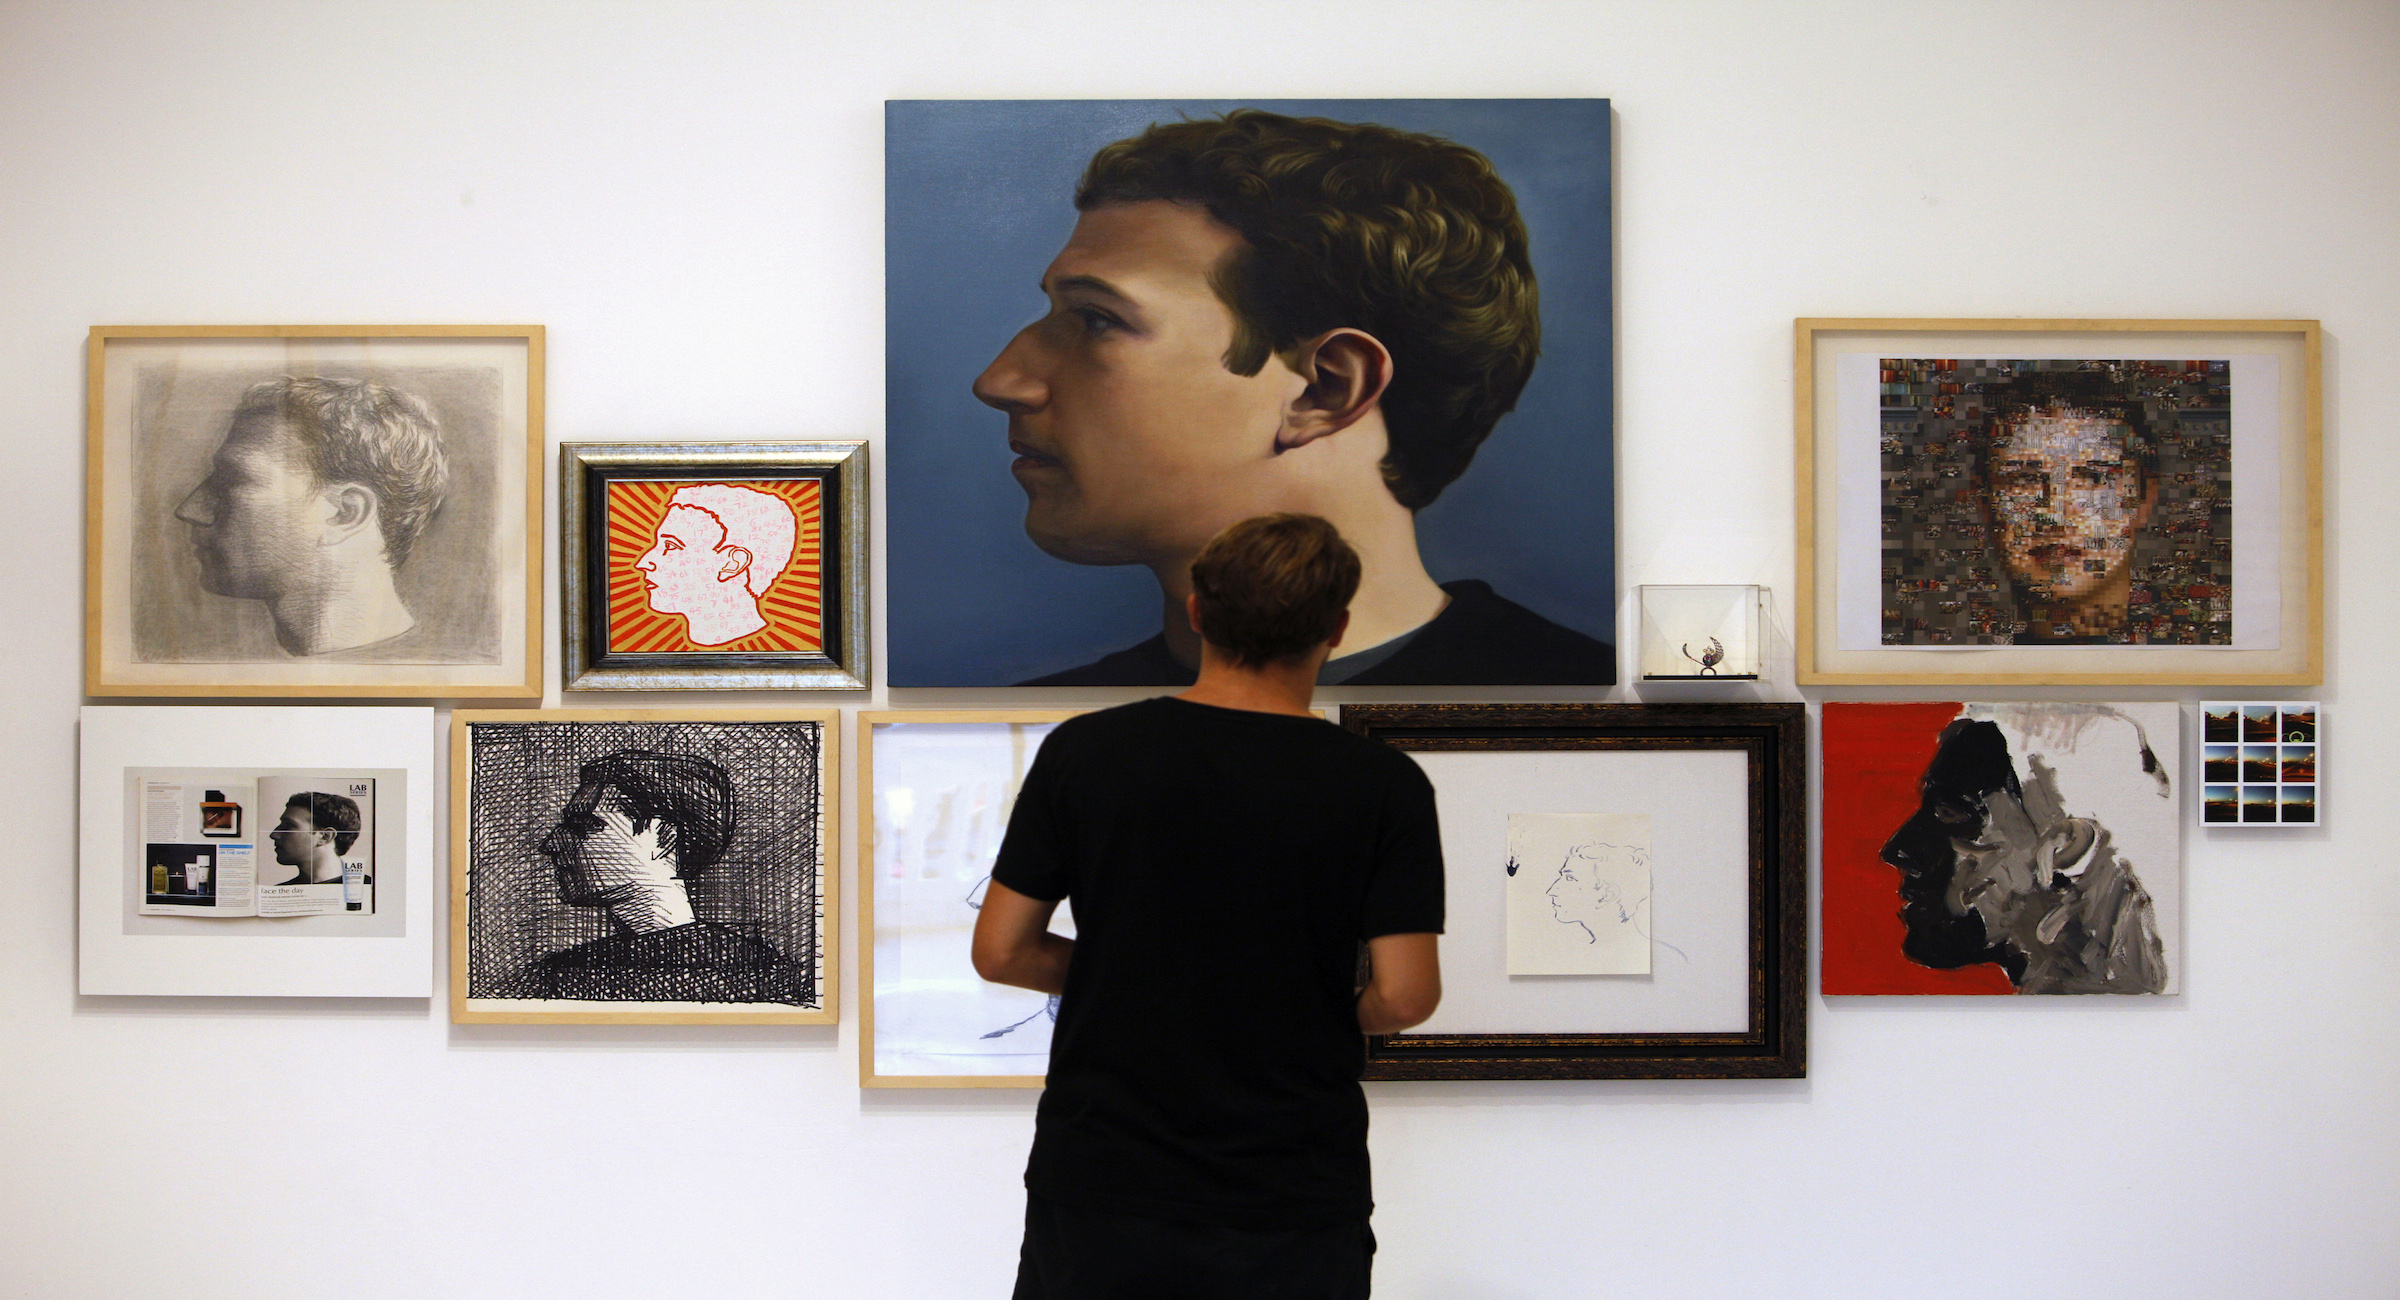 """A visitor looks at portraits of Facebook's founder Mark Zuckerberg at solo exhibition """"The Face of Facebook"""" by Chinese artist Zhu Jia at a gallery in Singapore October 30, 2013. To bring across the potency of social media in this exhibition, Zhu invited over 50 friends of various professions in his personal network, including some of the biggest names in China's contemporary art scene and friends of friends, to re-enact in their own style the iconic image of Zuckerberg featured in a September 2010 issue of the New Yorker article titled """"The Face of Facebook"""". The 67 artworks, in various size and mediums ranging from oil paintings to digital prints, will be sold as a complete collection to a single buyer at the price of S$700,000 ($565,650), according to the gallery. The exhibition runs from October 23 to December 9.  REUTERS/Edgar Su (SINGAPORE - Tags: SOCIETY SCIENCE TECHNOLOGY) - RTX14TT1"""